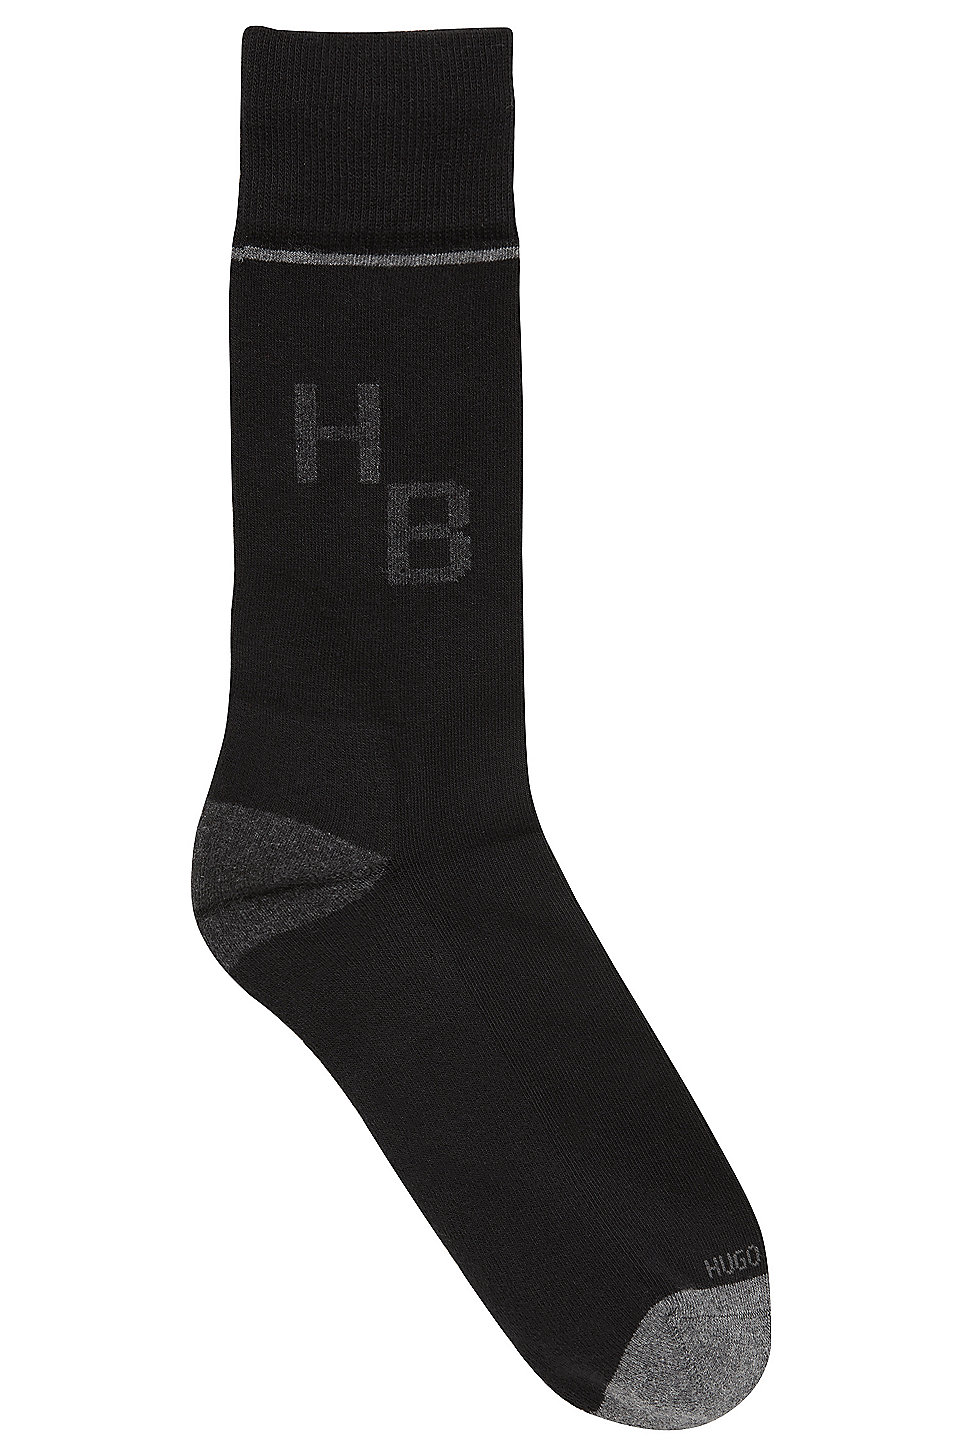 boss mittelhohe socken aus elastischem baumwoll mix mit monogramm. Black Bedroom Furniture Sets. Home Design Ideas